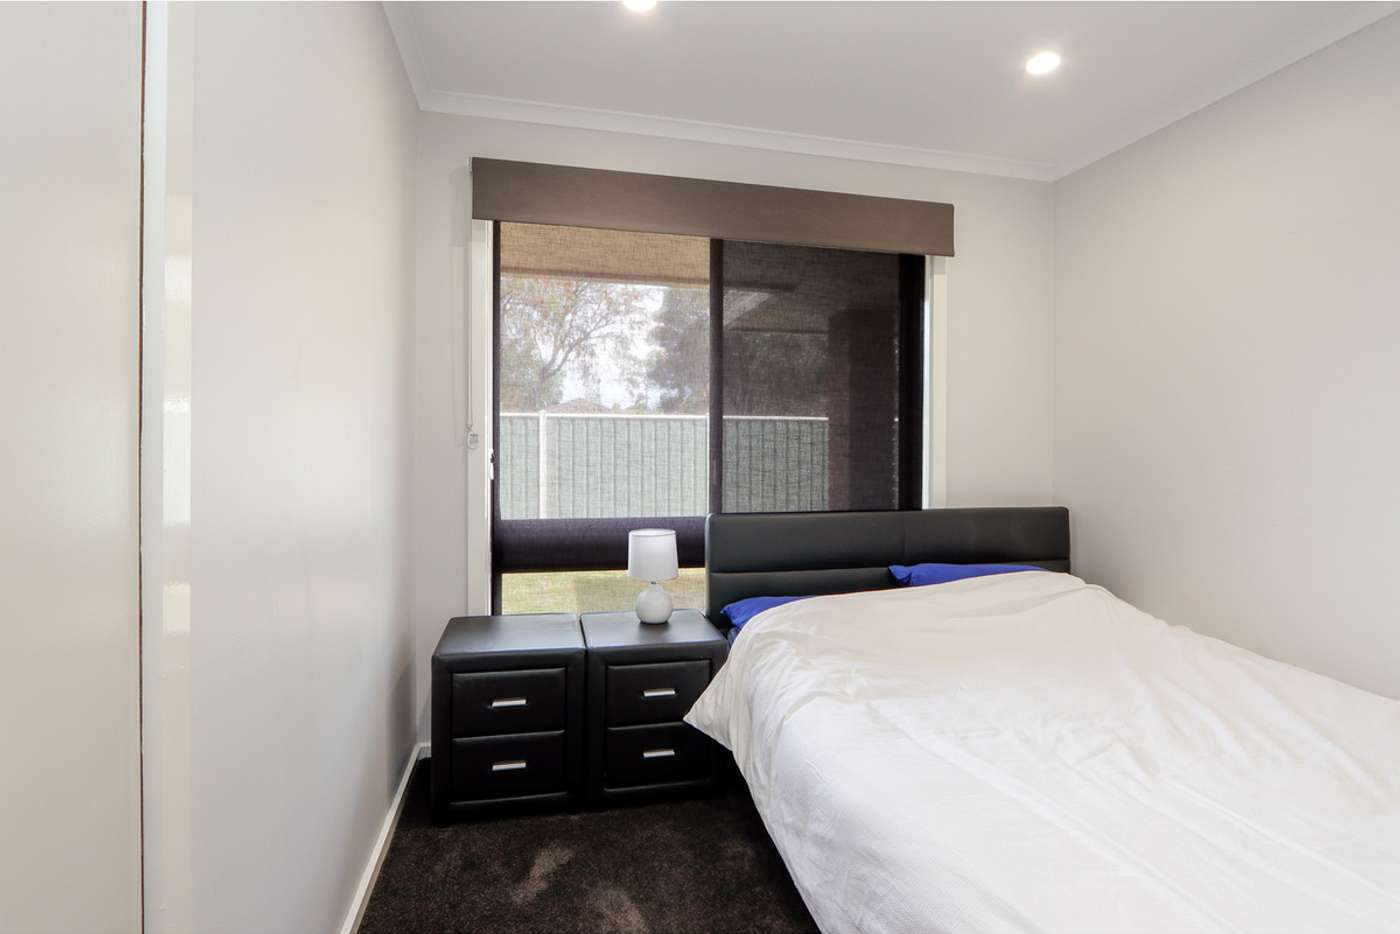 Sixth view of Homely house listing, 53 Inglis Street, Sale VIC 3850